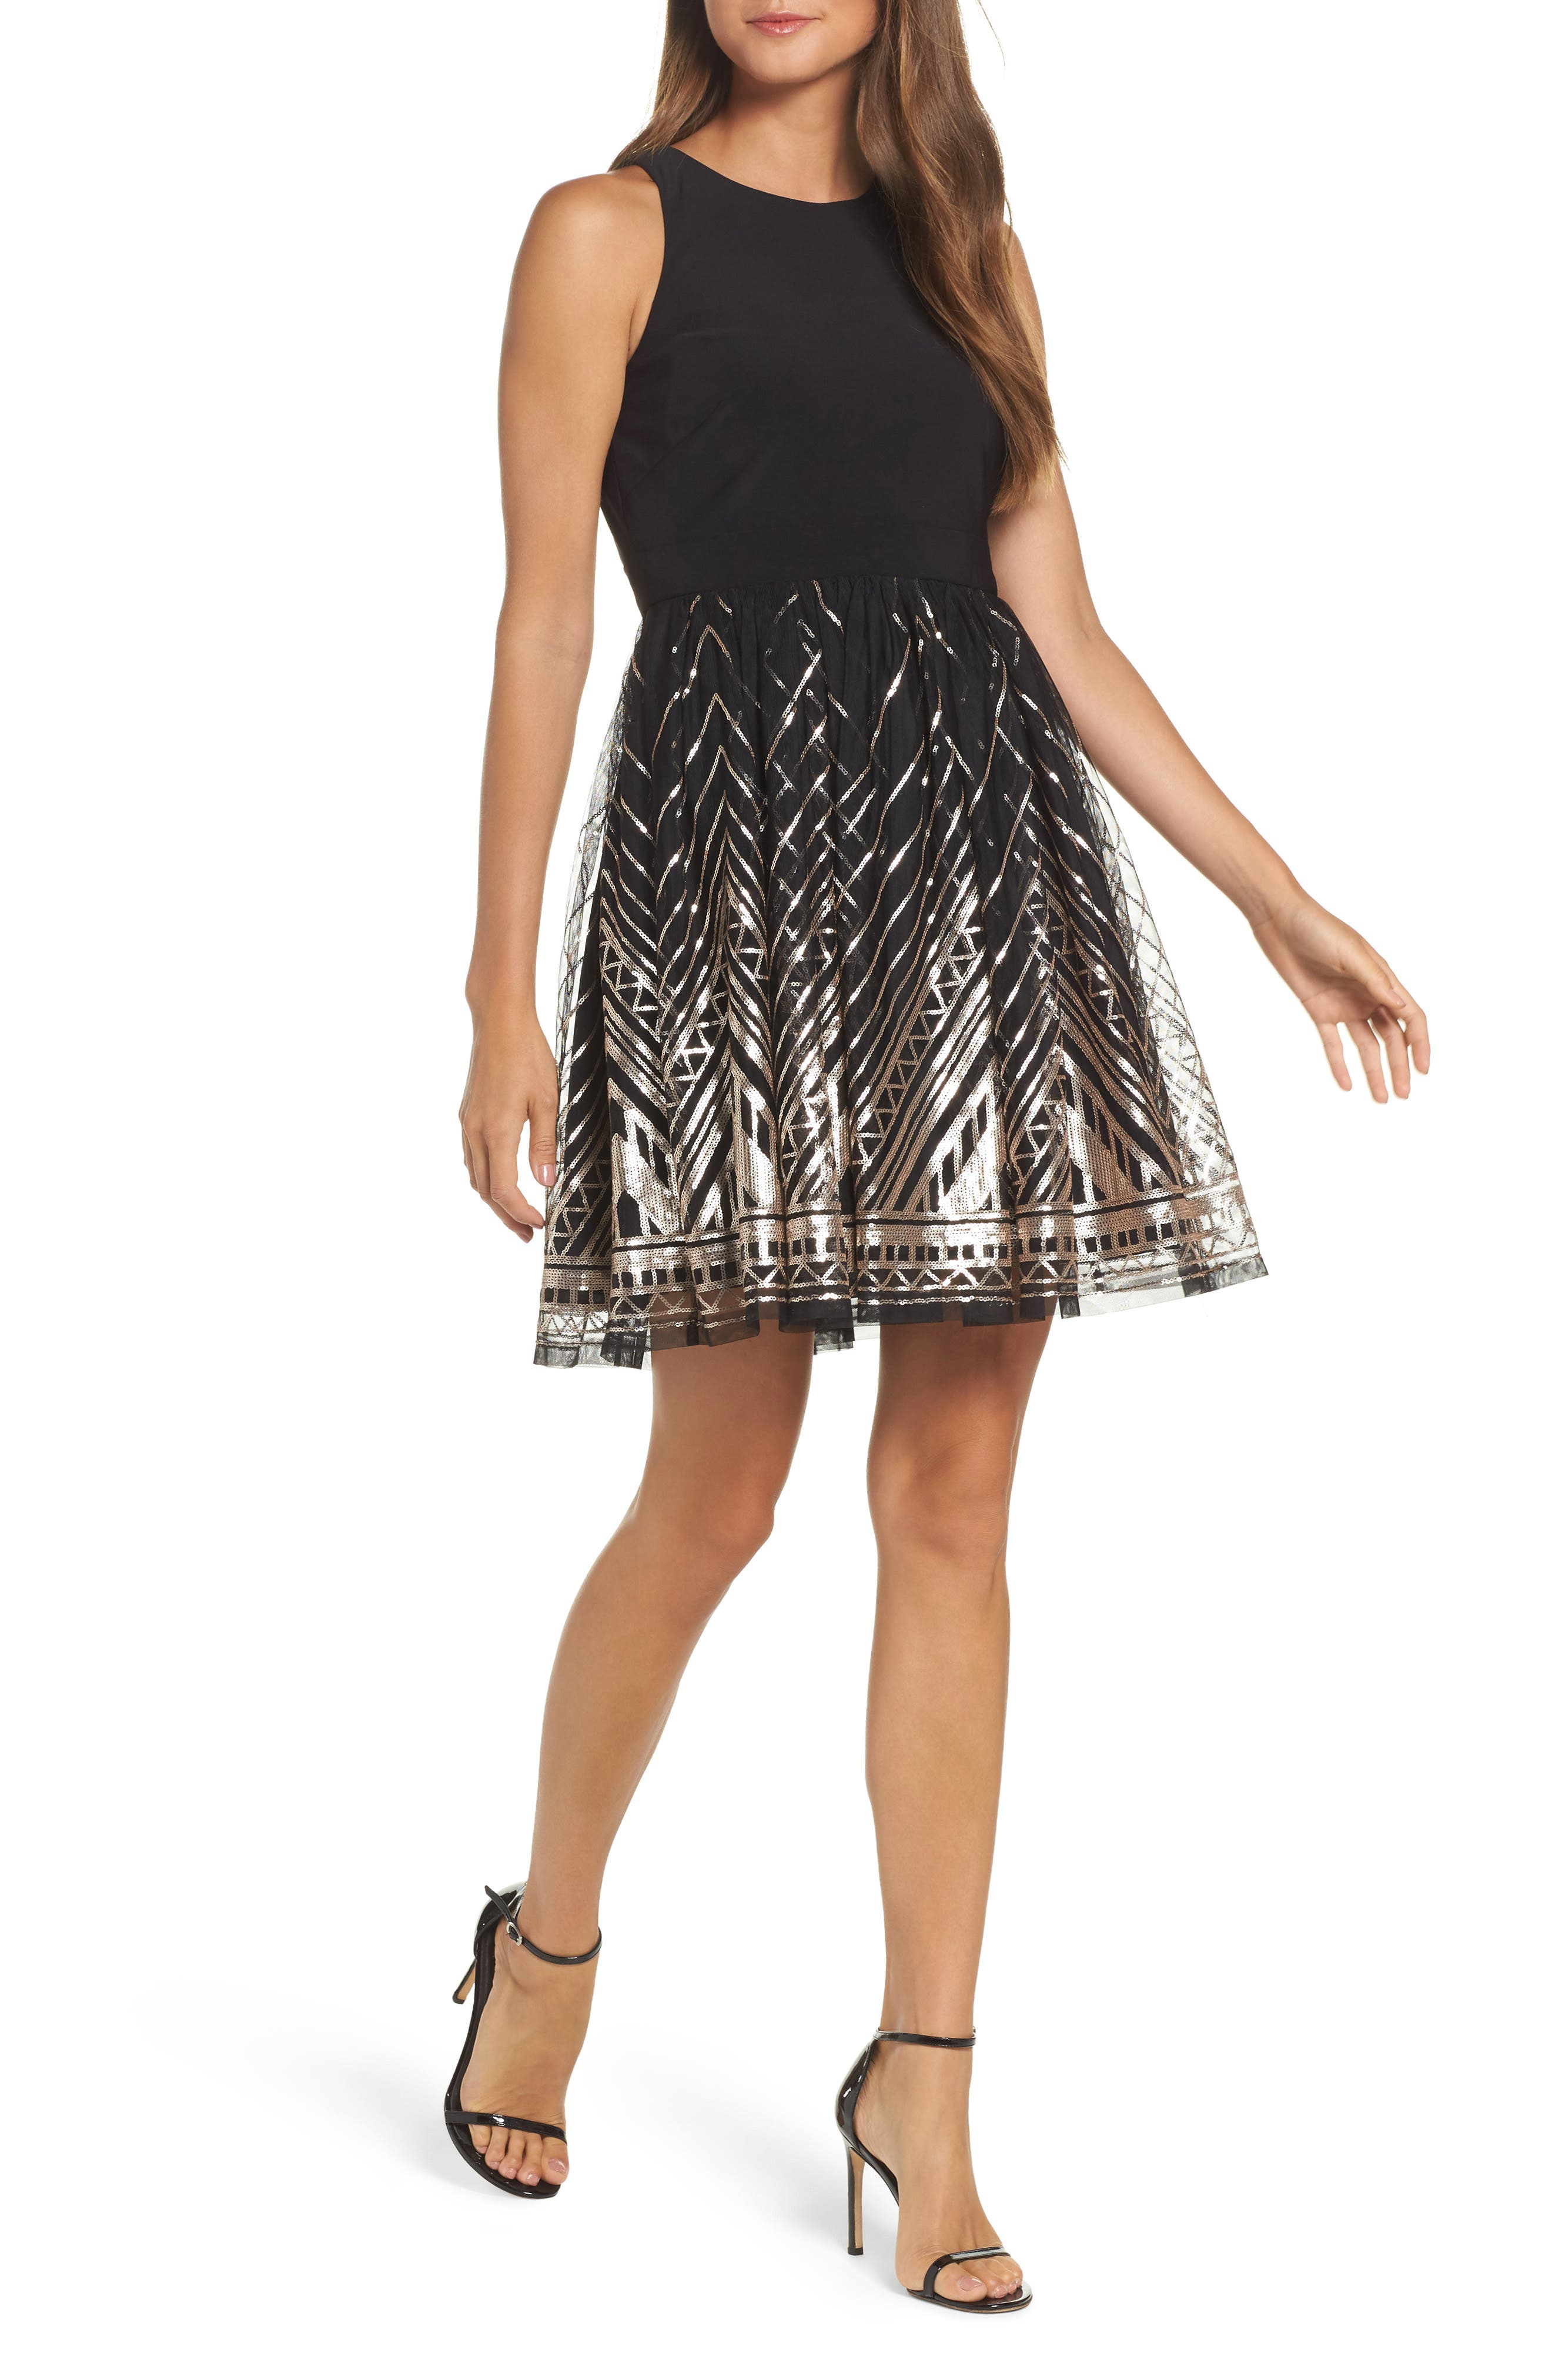 VINCE CAMUTO Sequin Fit & Flare Cocktail Dress, Main, color, BLACK/ GOLD